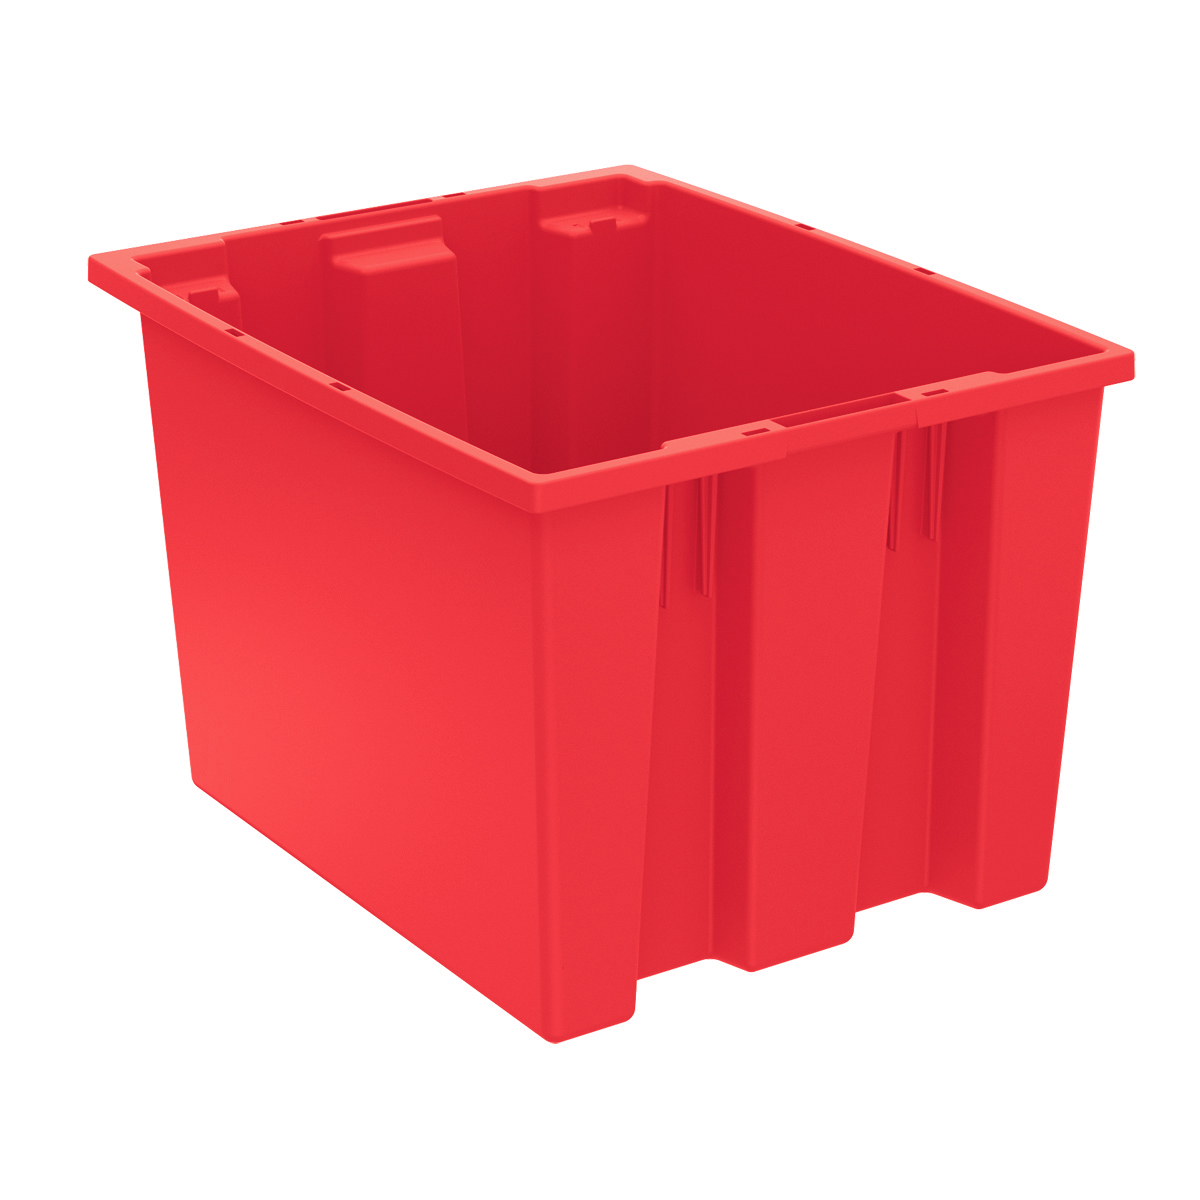 Nest & Stack Tote 19-1/2 x 15-1/2 x 13, Red (35195RED).  This item sold in carton quantities of 6.